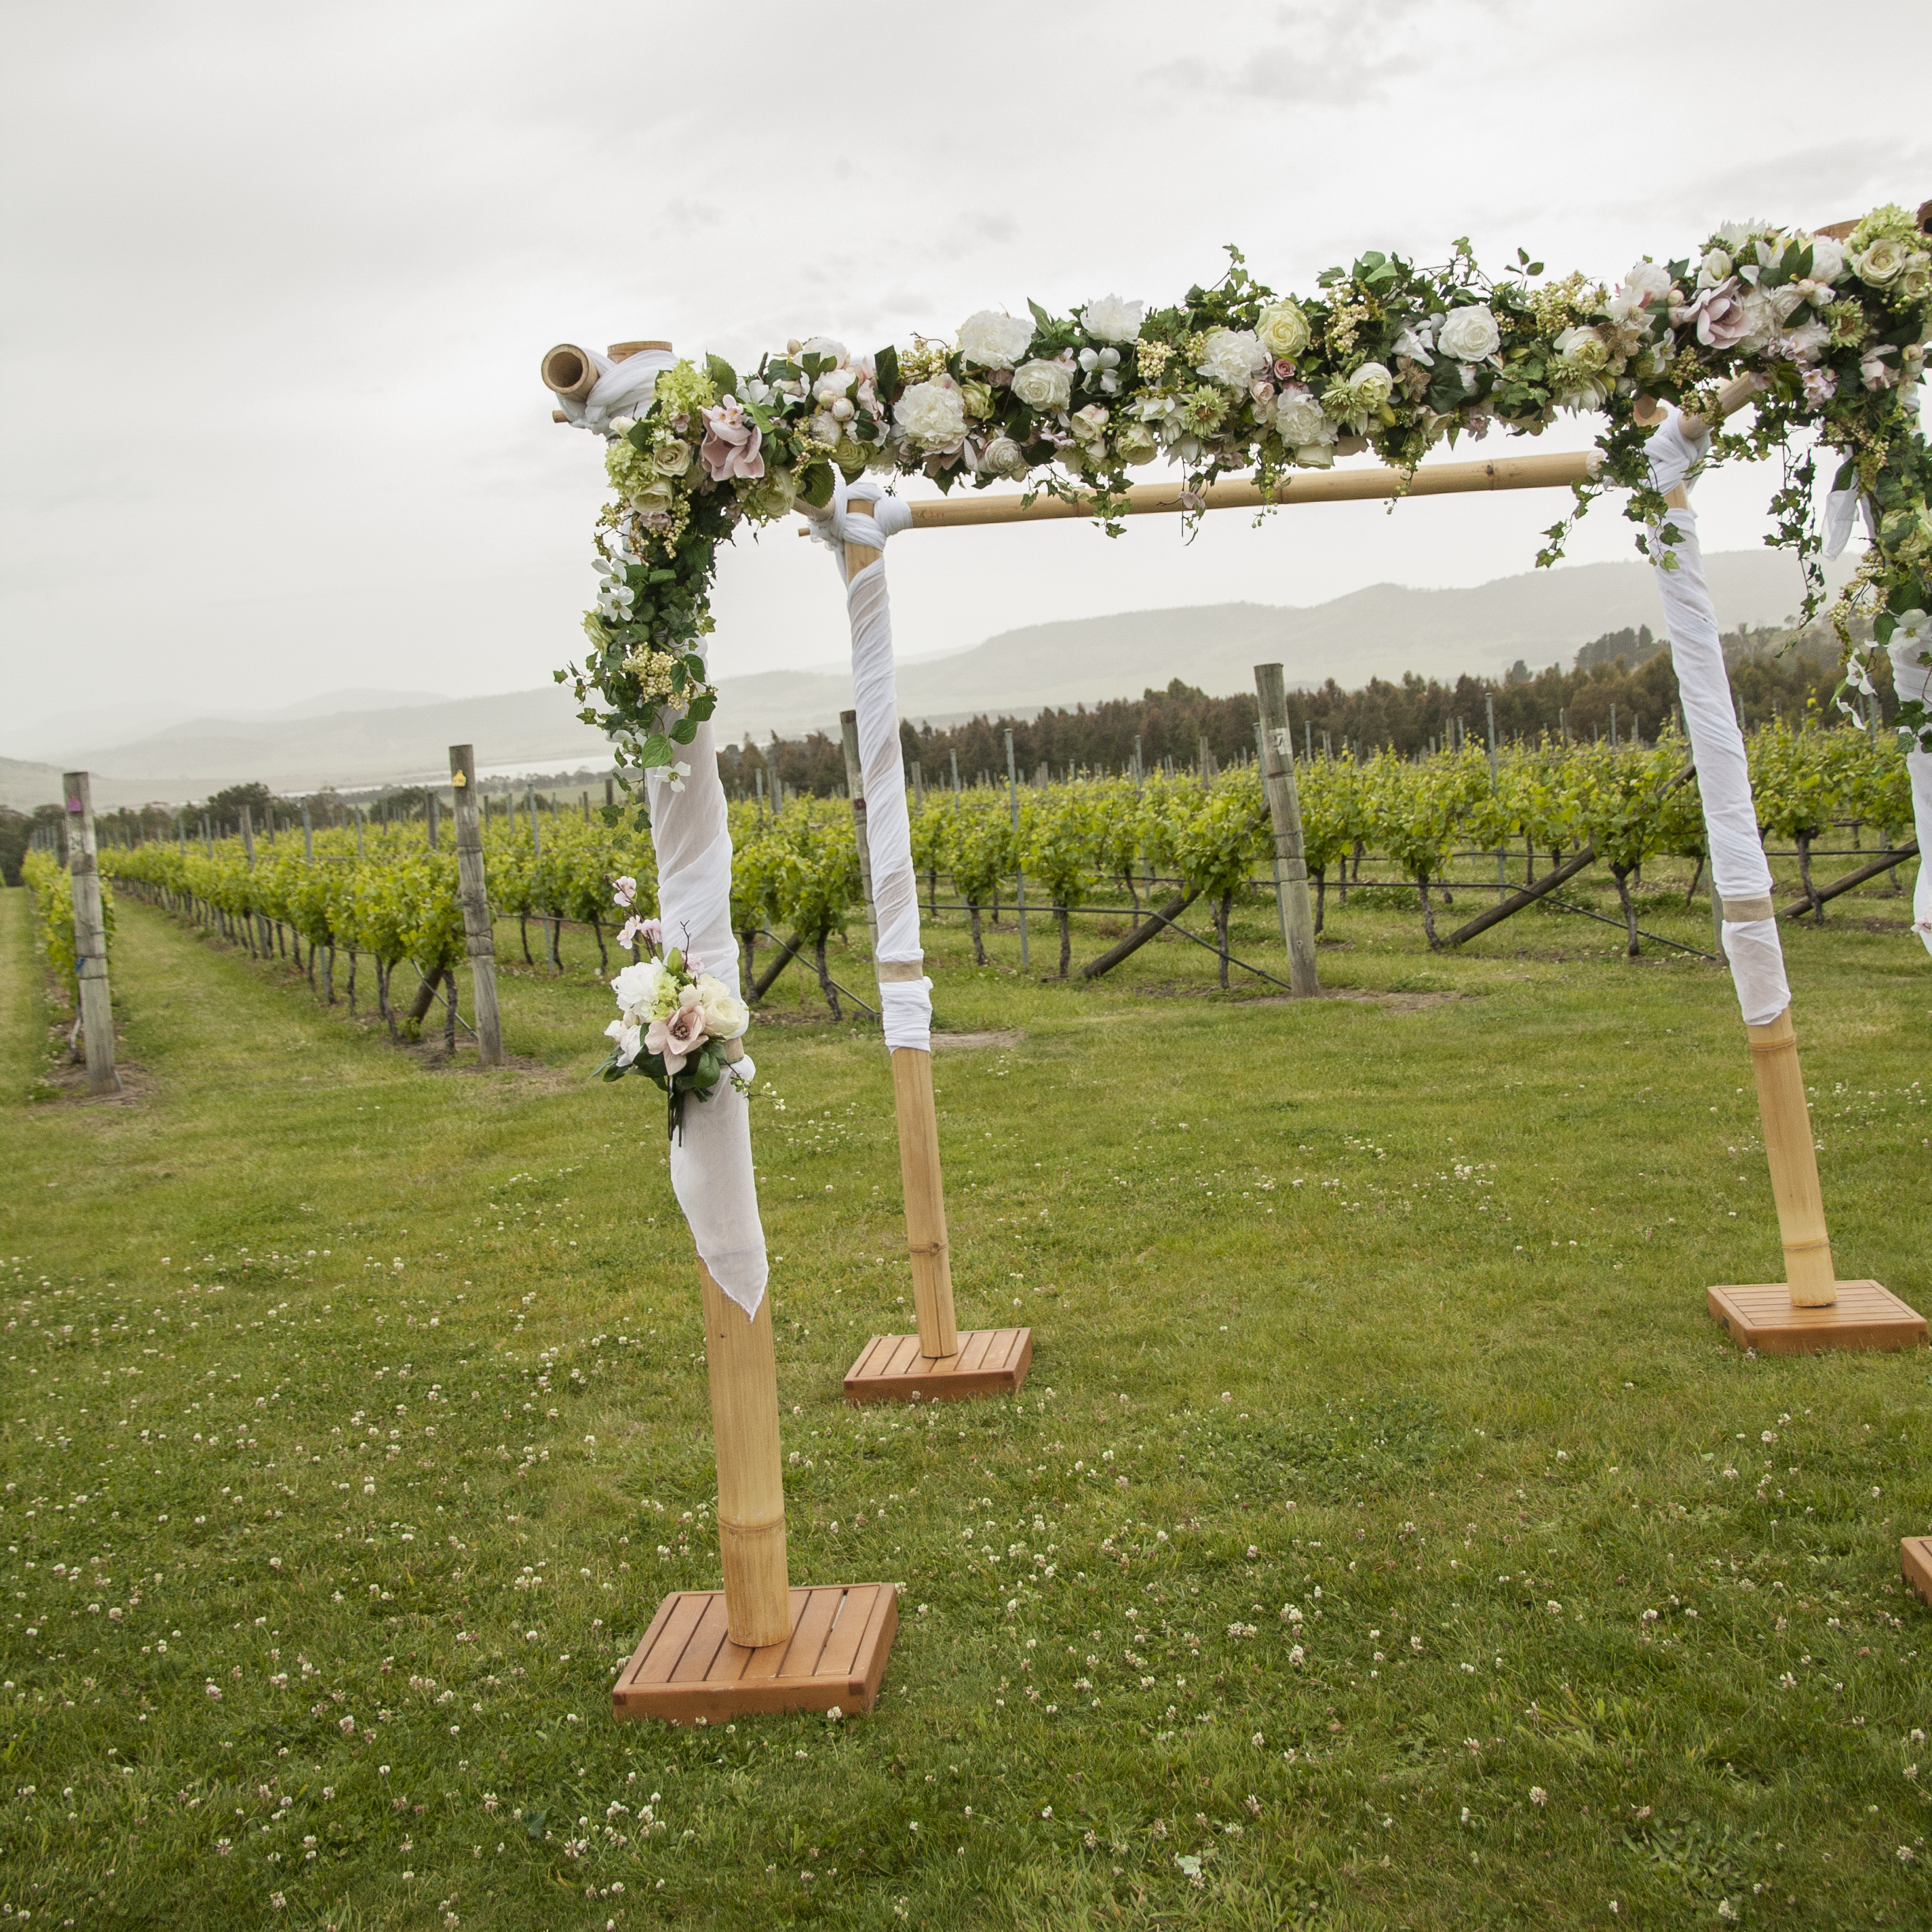 Courtney & Aaron - Style my day - Frogmore Creek Winery